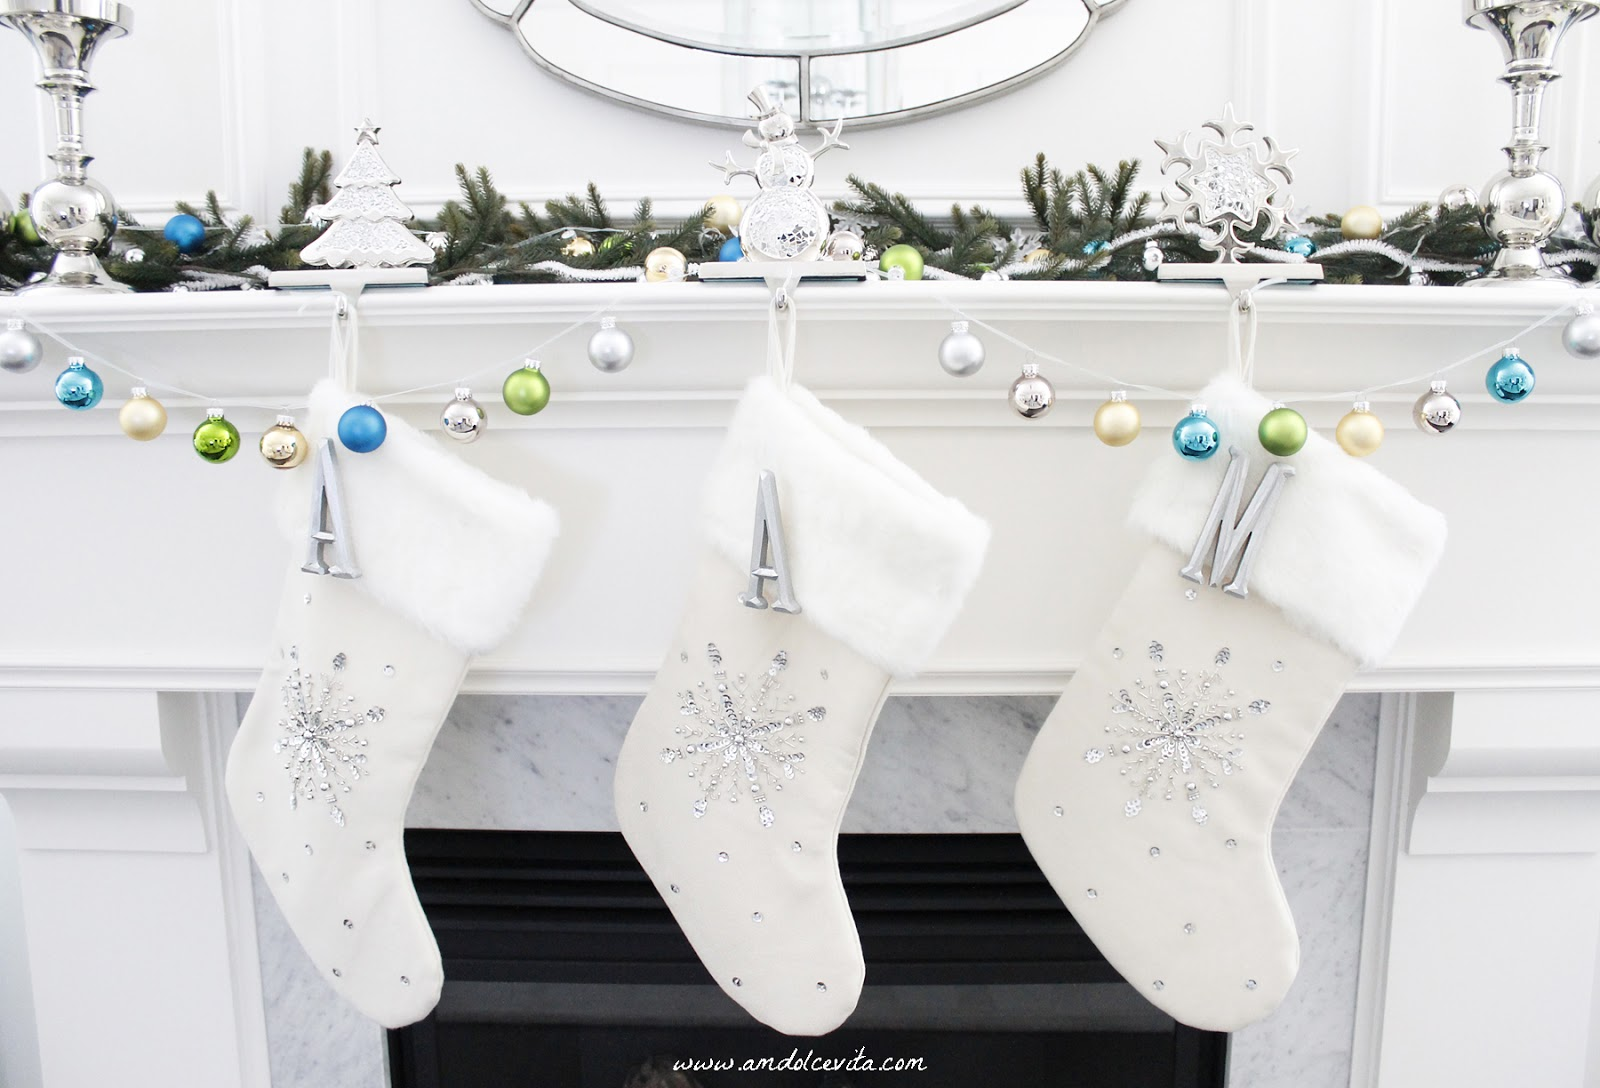 Personalized diy christmas stockings ideas ellys diy blog diy christmas stockings 6 solutioingenieria Images